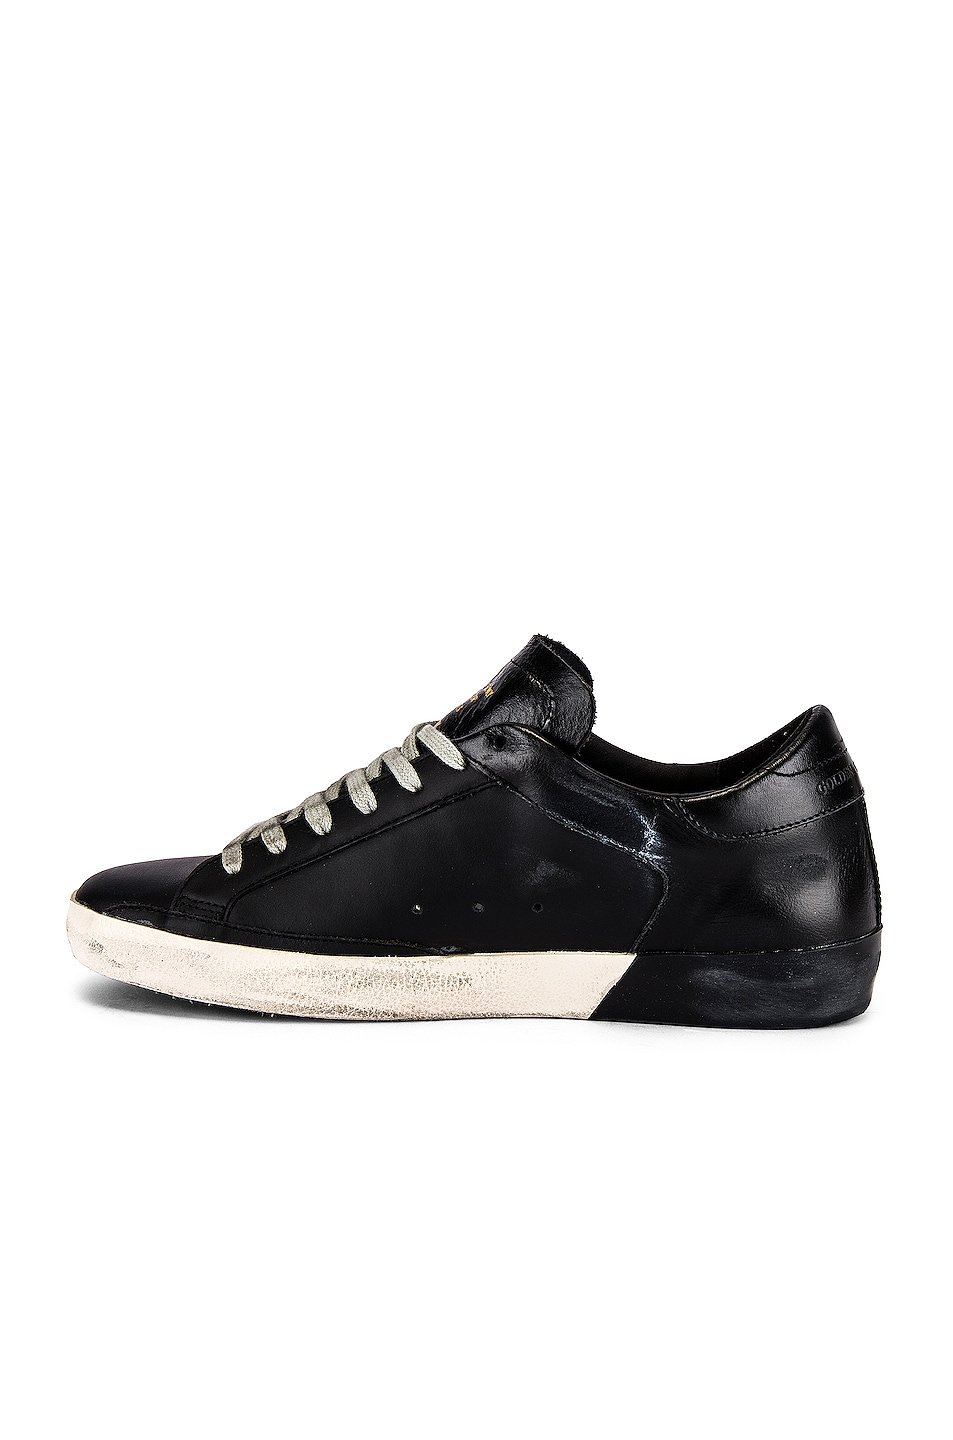 Image 5 of Golden Goose Superstar Sneaker in Black Leather & Black Foxing